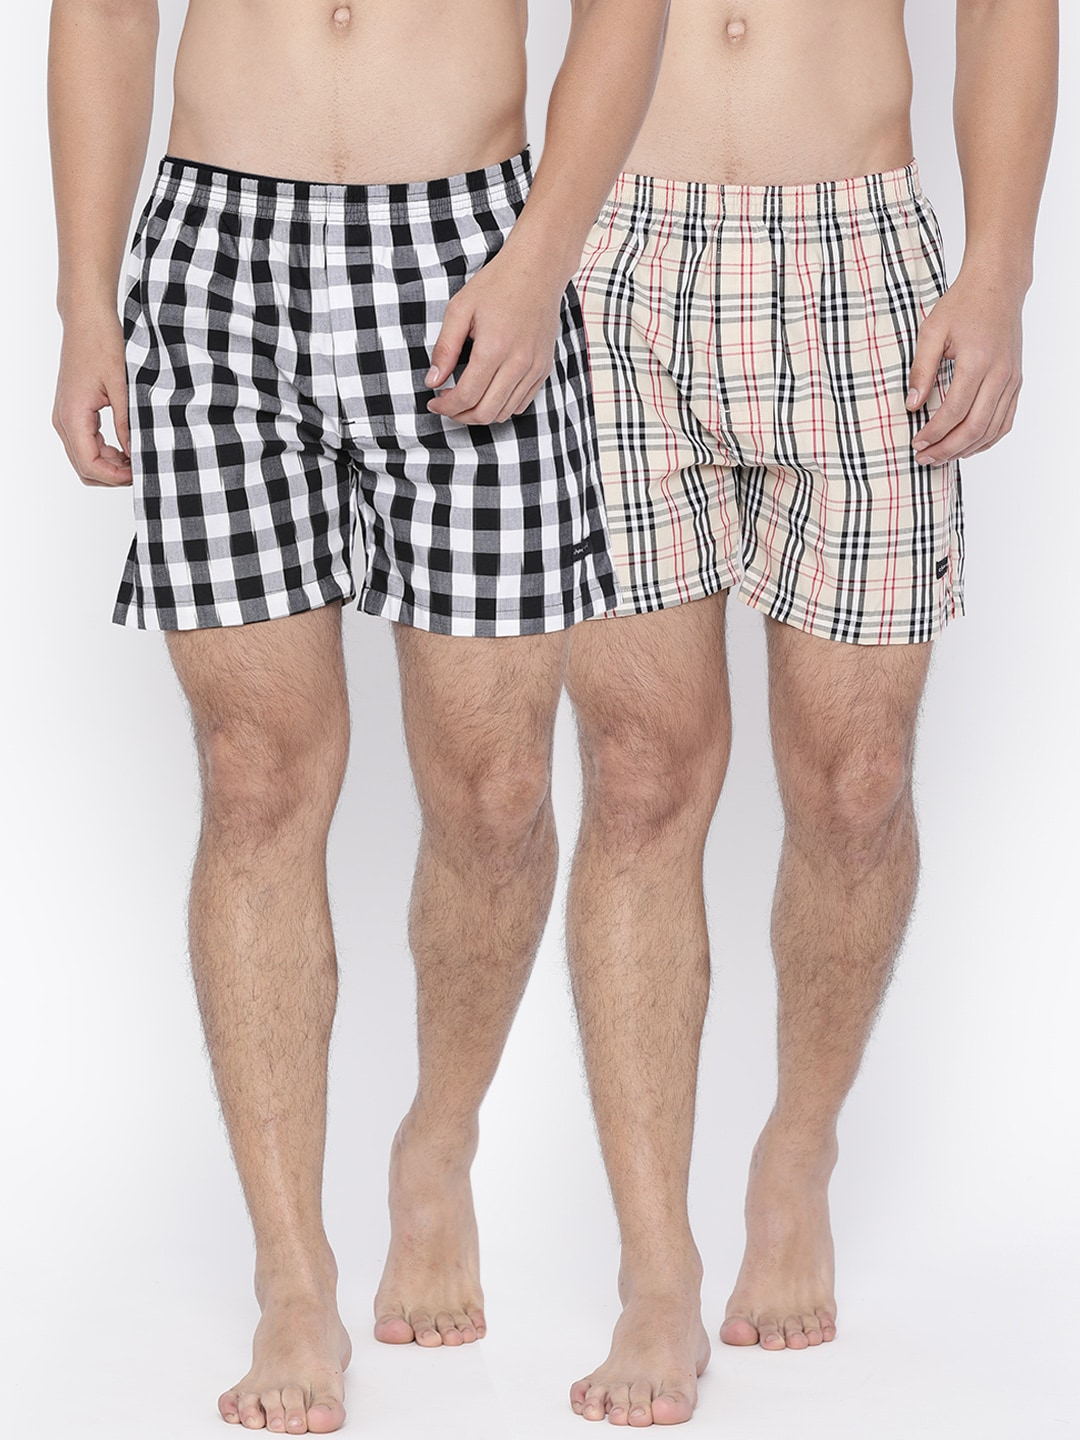 Chromozome Pack of 2 Checked Boxers IT 04 image